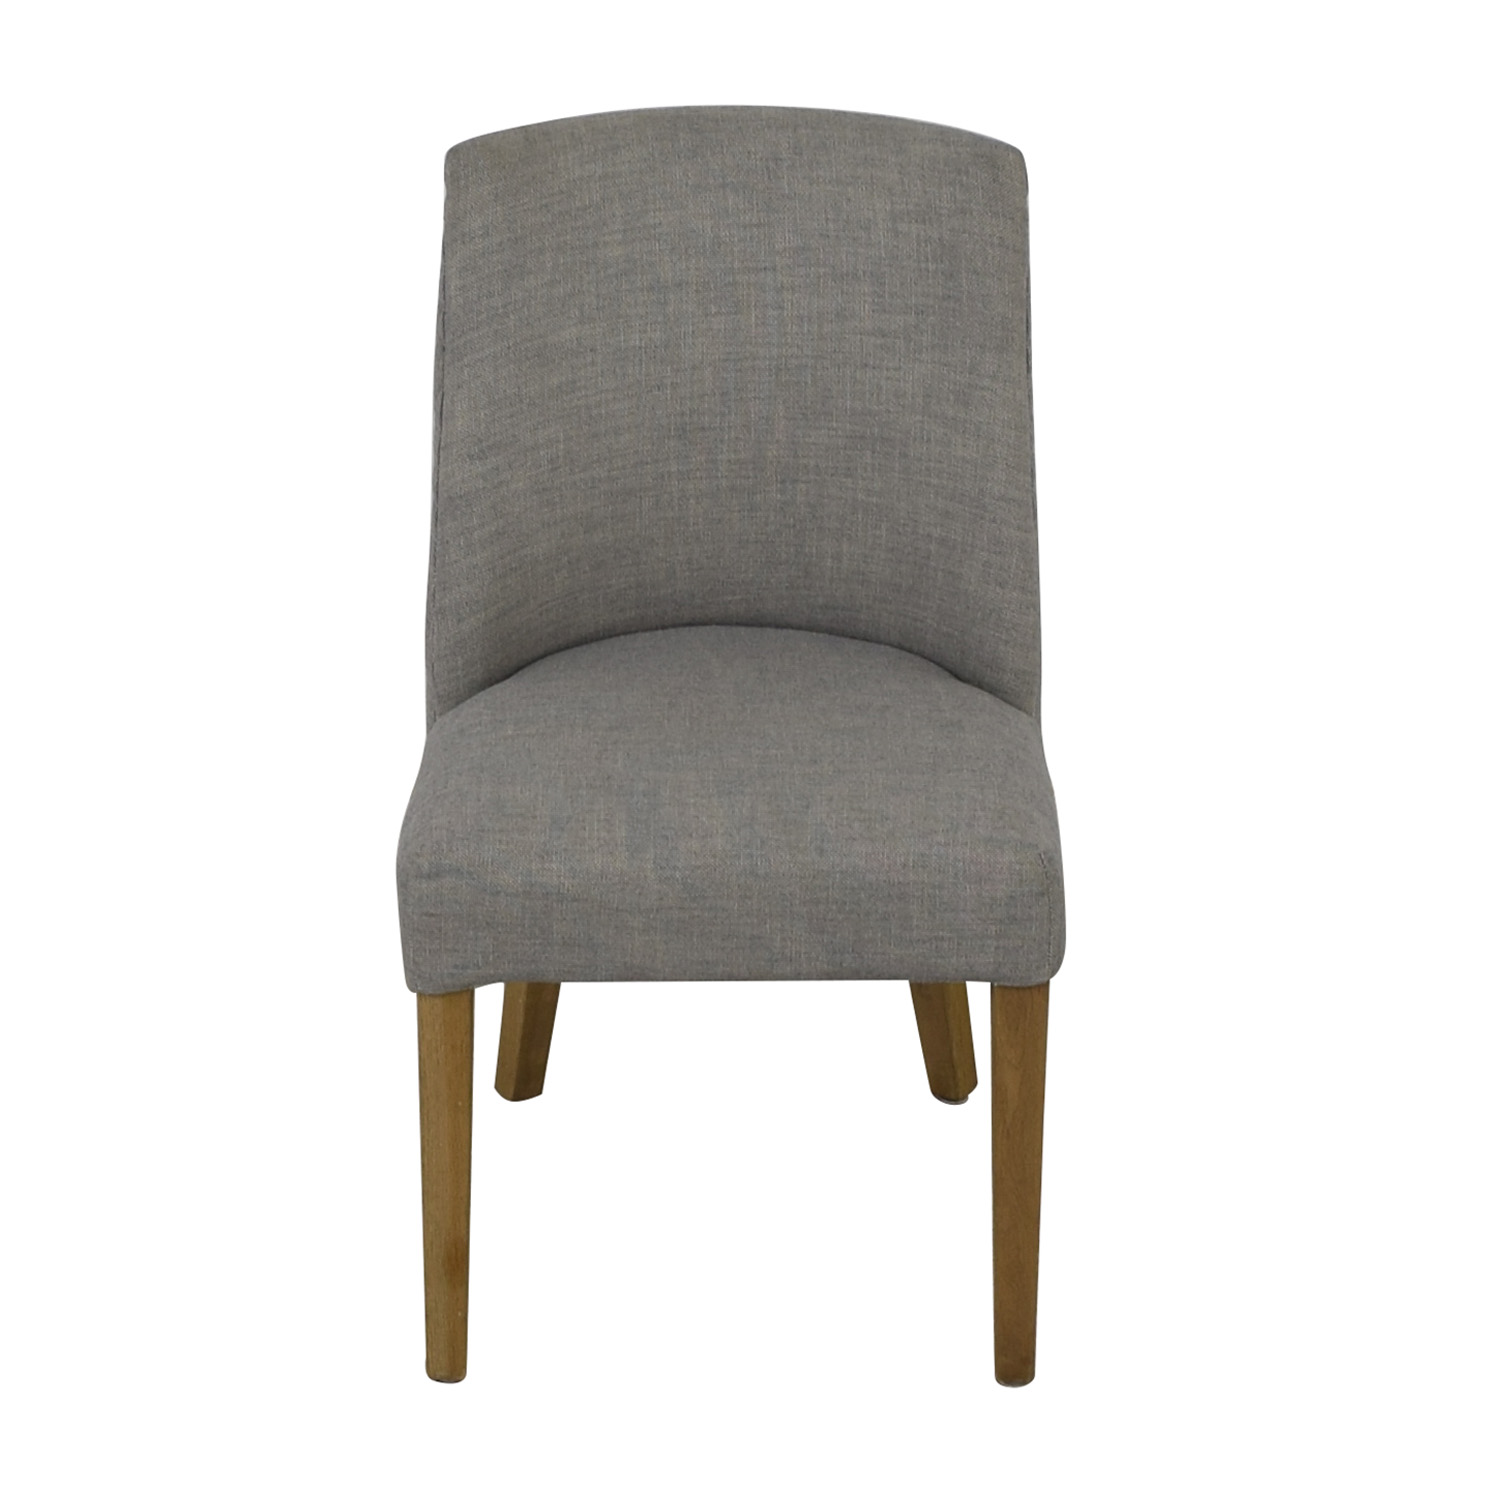 Restoration Hardware Restoration Hardware 1940S French Barrelback Fabric Side Chair coupon